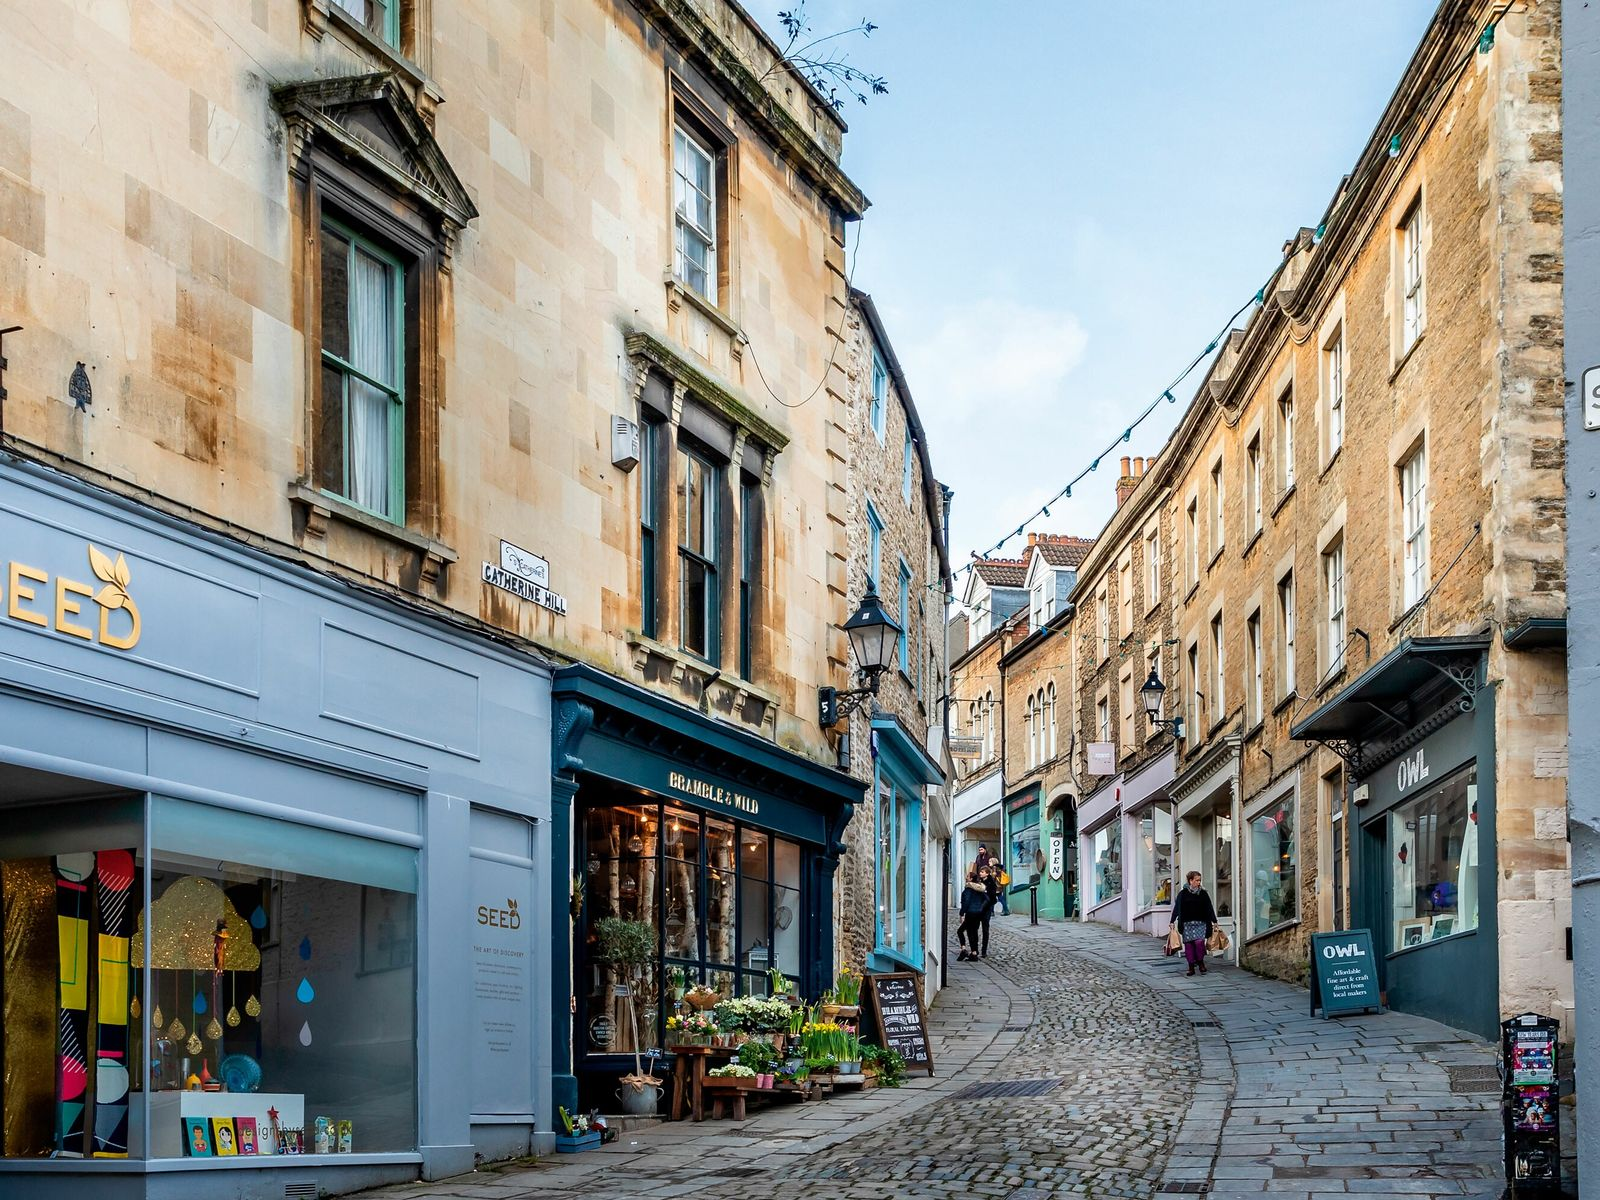 Half an hour's drive between Bath and the arty town of Bruton, Frome is the ideal ...